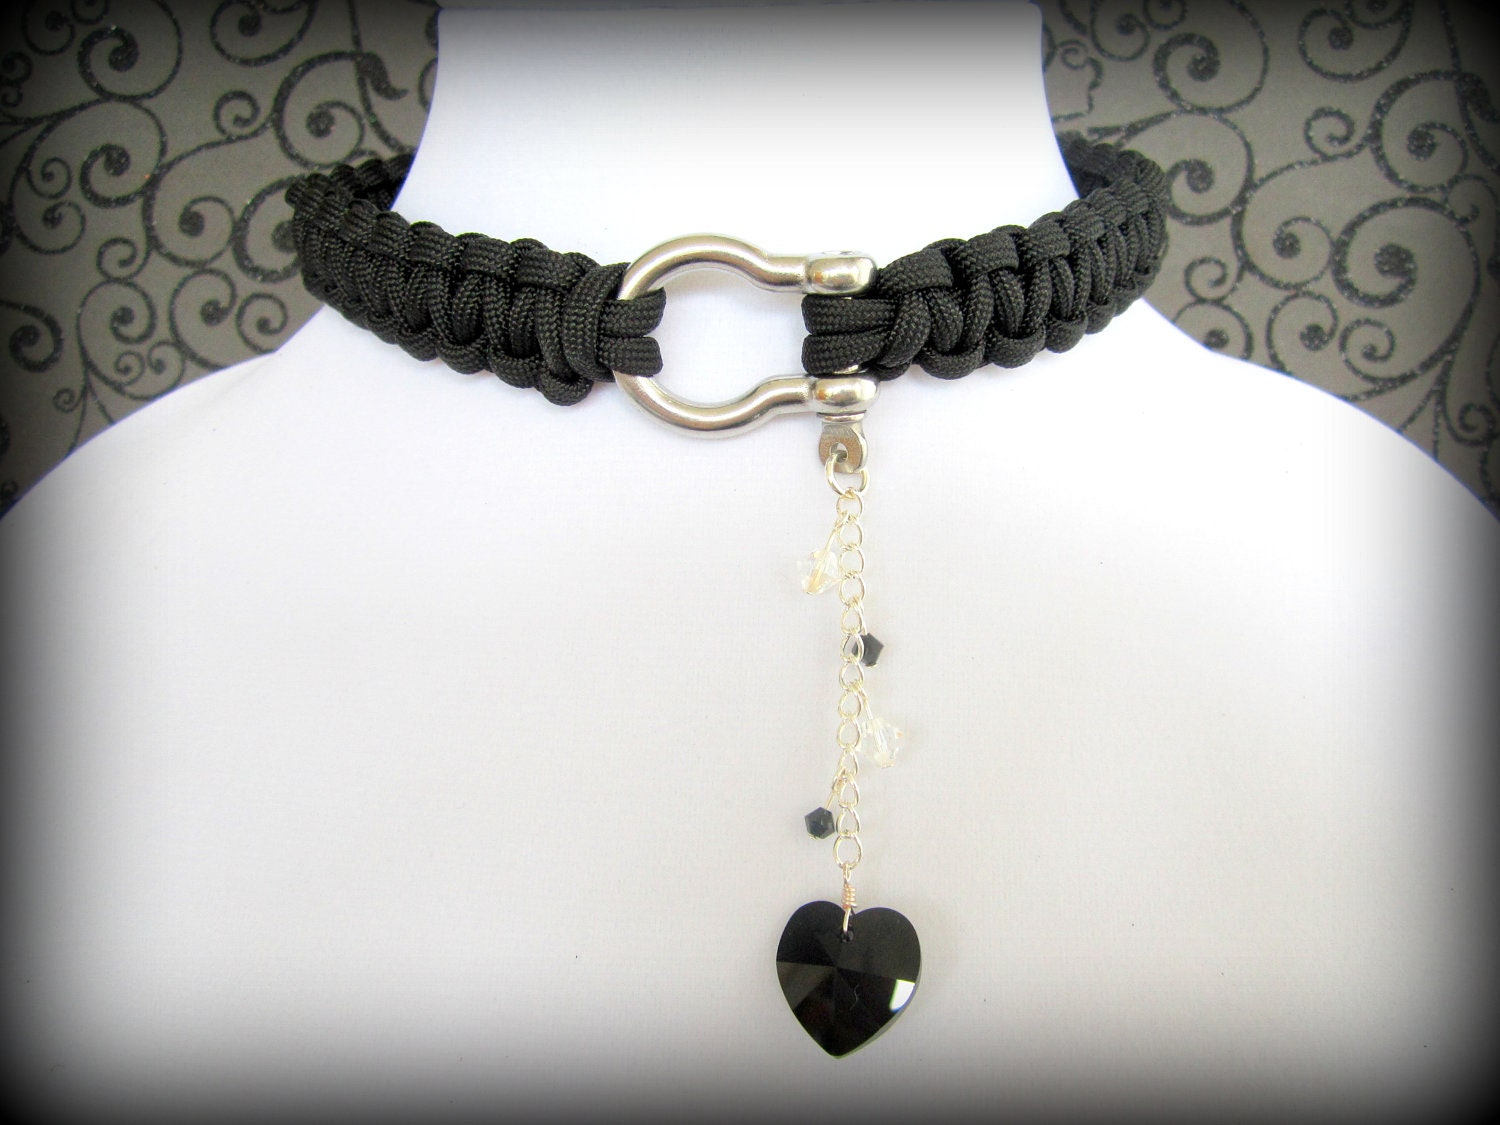 Necklace collar for bdsm